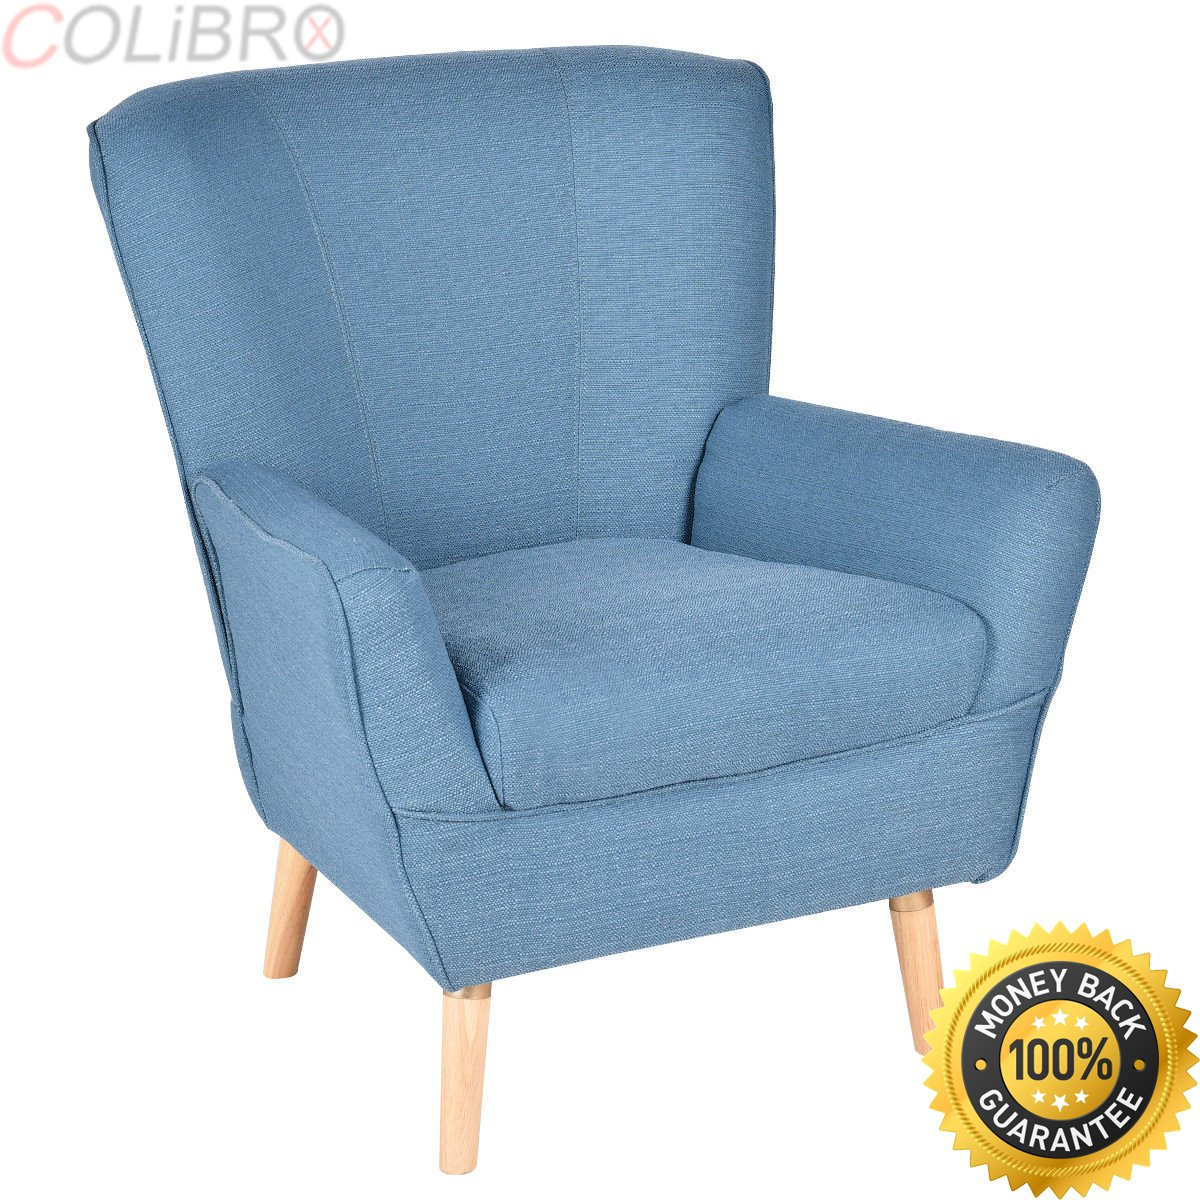 Astounding Amazon Com Colibrox Accent Leisure Arm Chair Upholstered Camellatalisay Diy Chair Ideas Camellatalisaycom